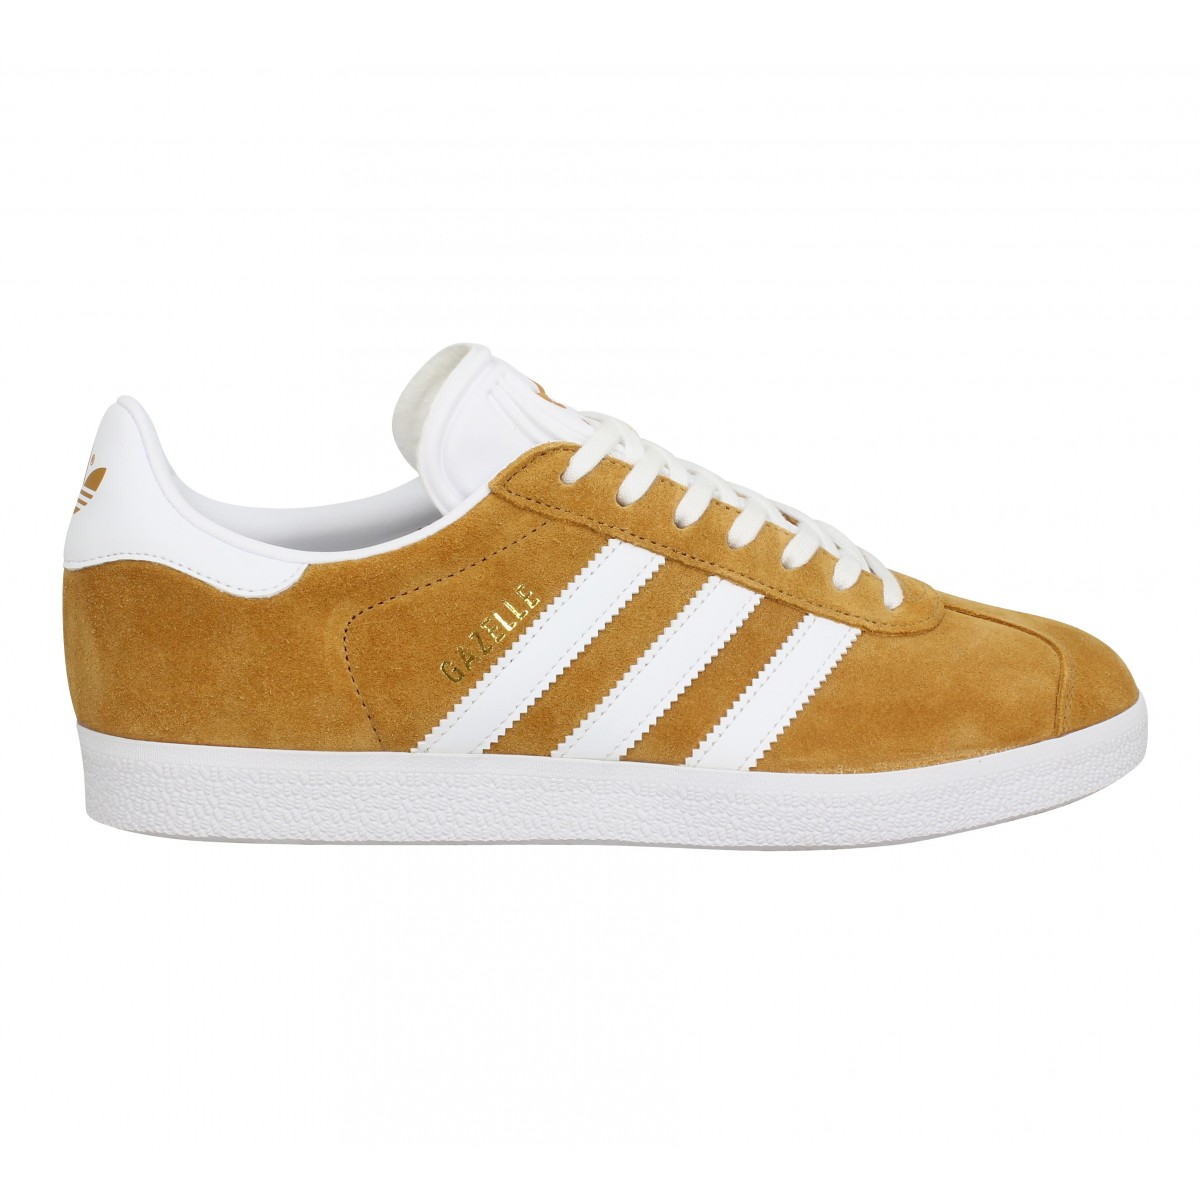 Chaussures Adidas gazelle velours ocre femme homme | Fanny chaussures